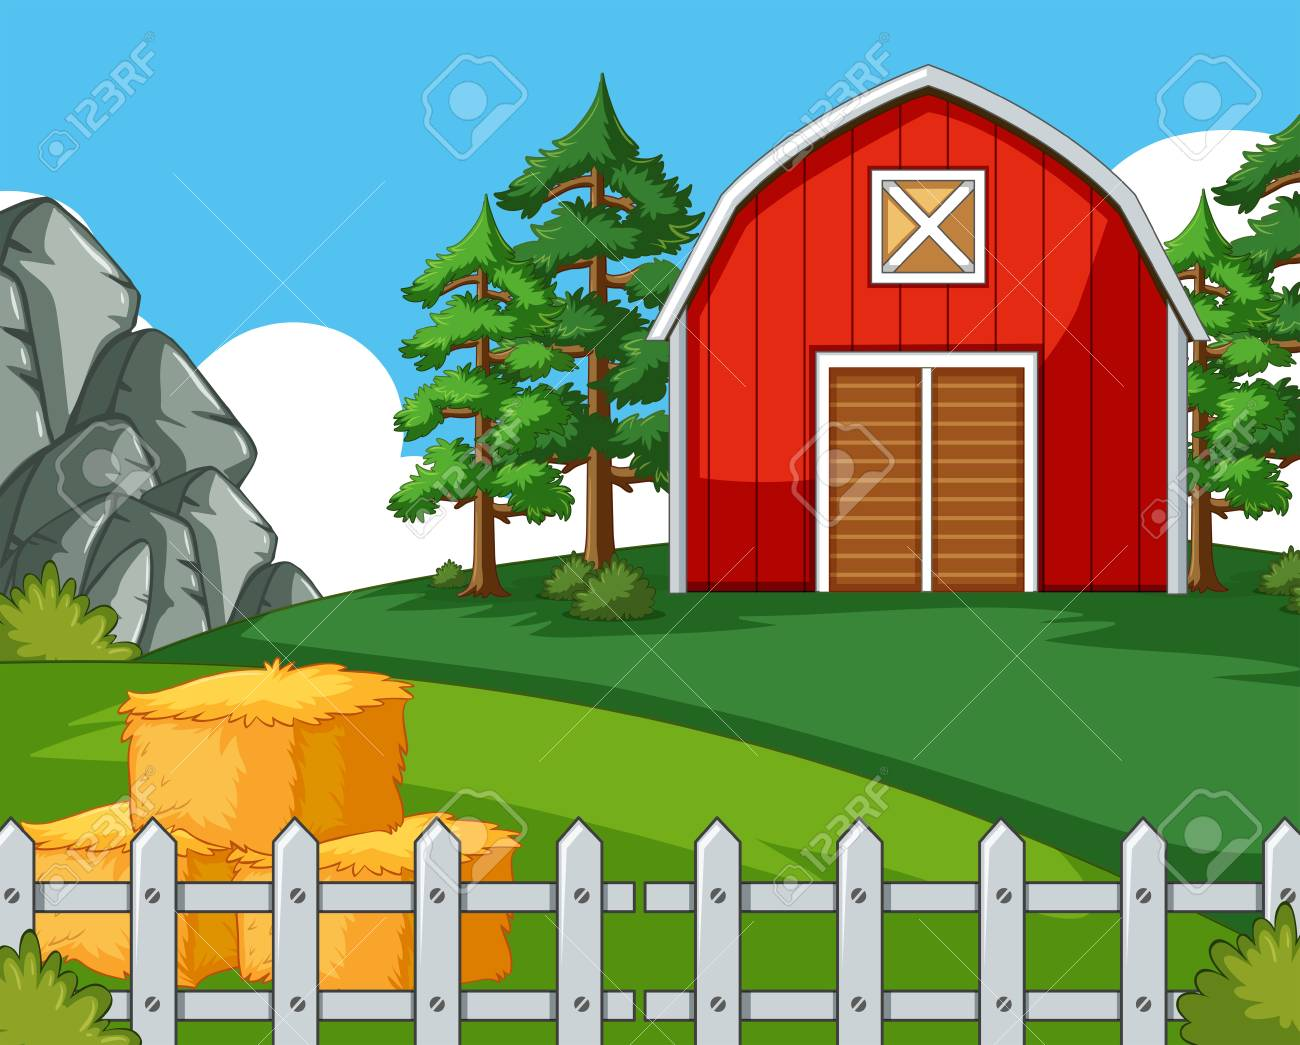 Background Scene With Barn And Hay Illustration Stock Vector